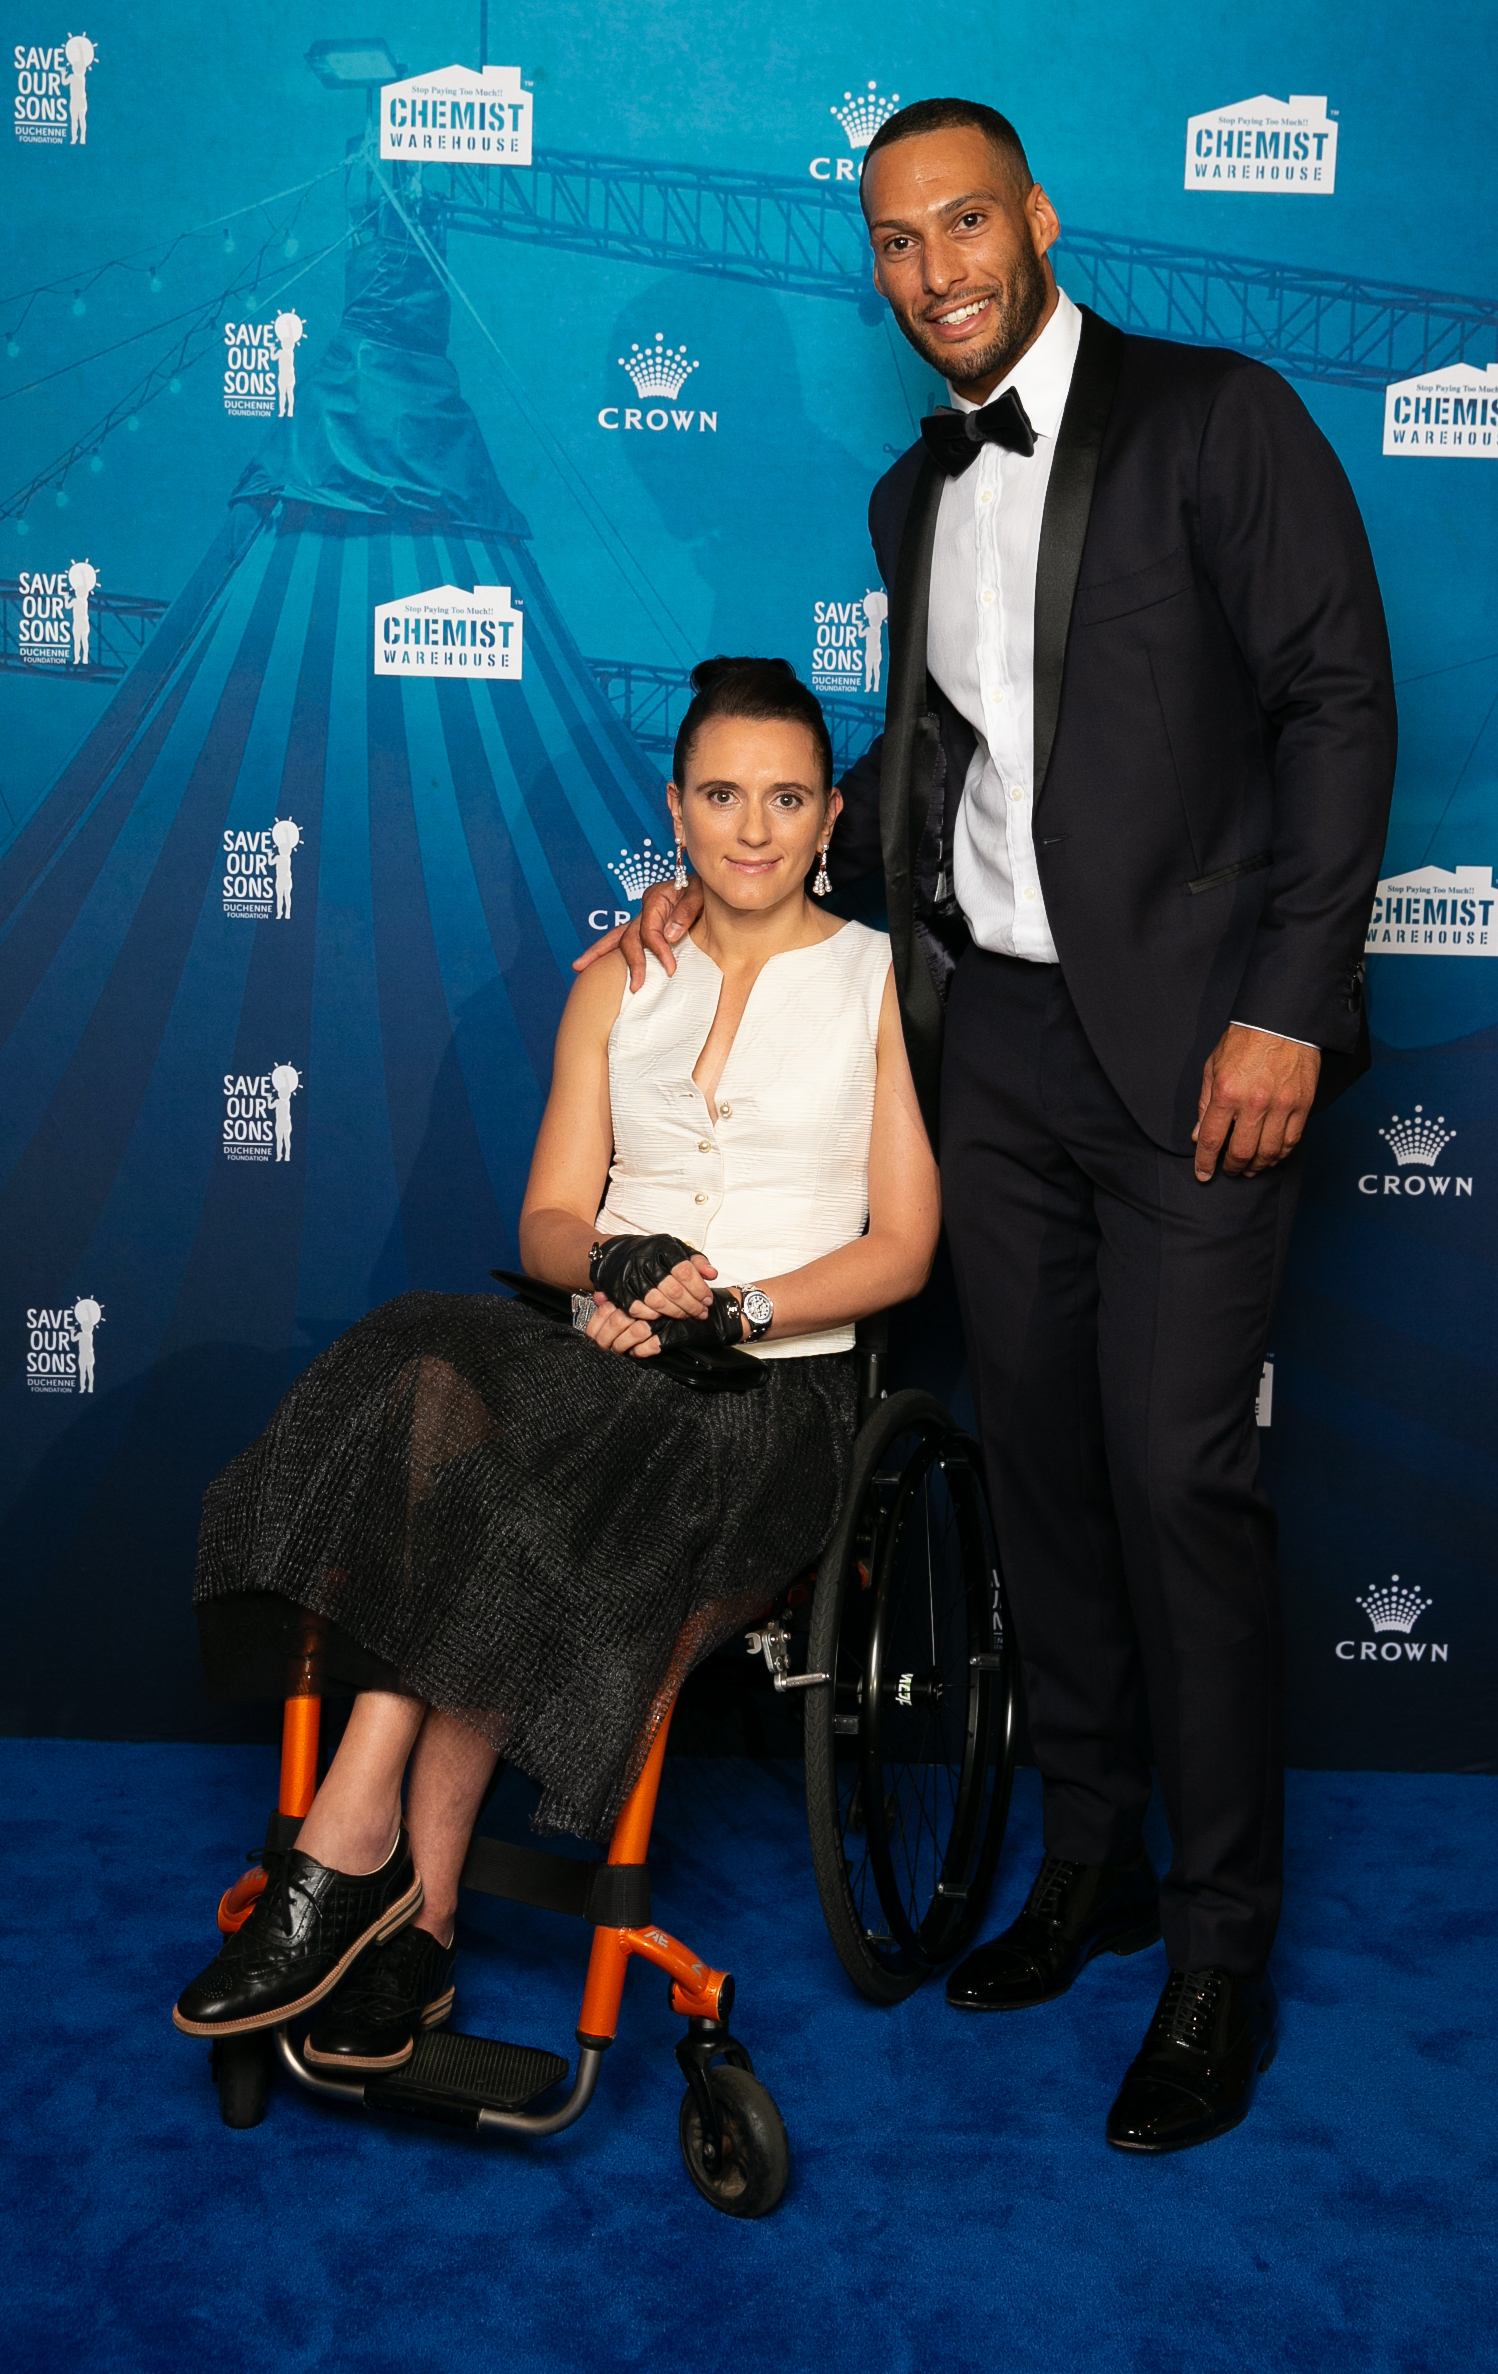 Save Our Sons Gala.  Palladium Crown Resorts.  Josh Gibson and girlfriend Olga Kononchuk